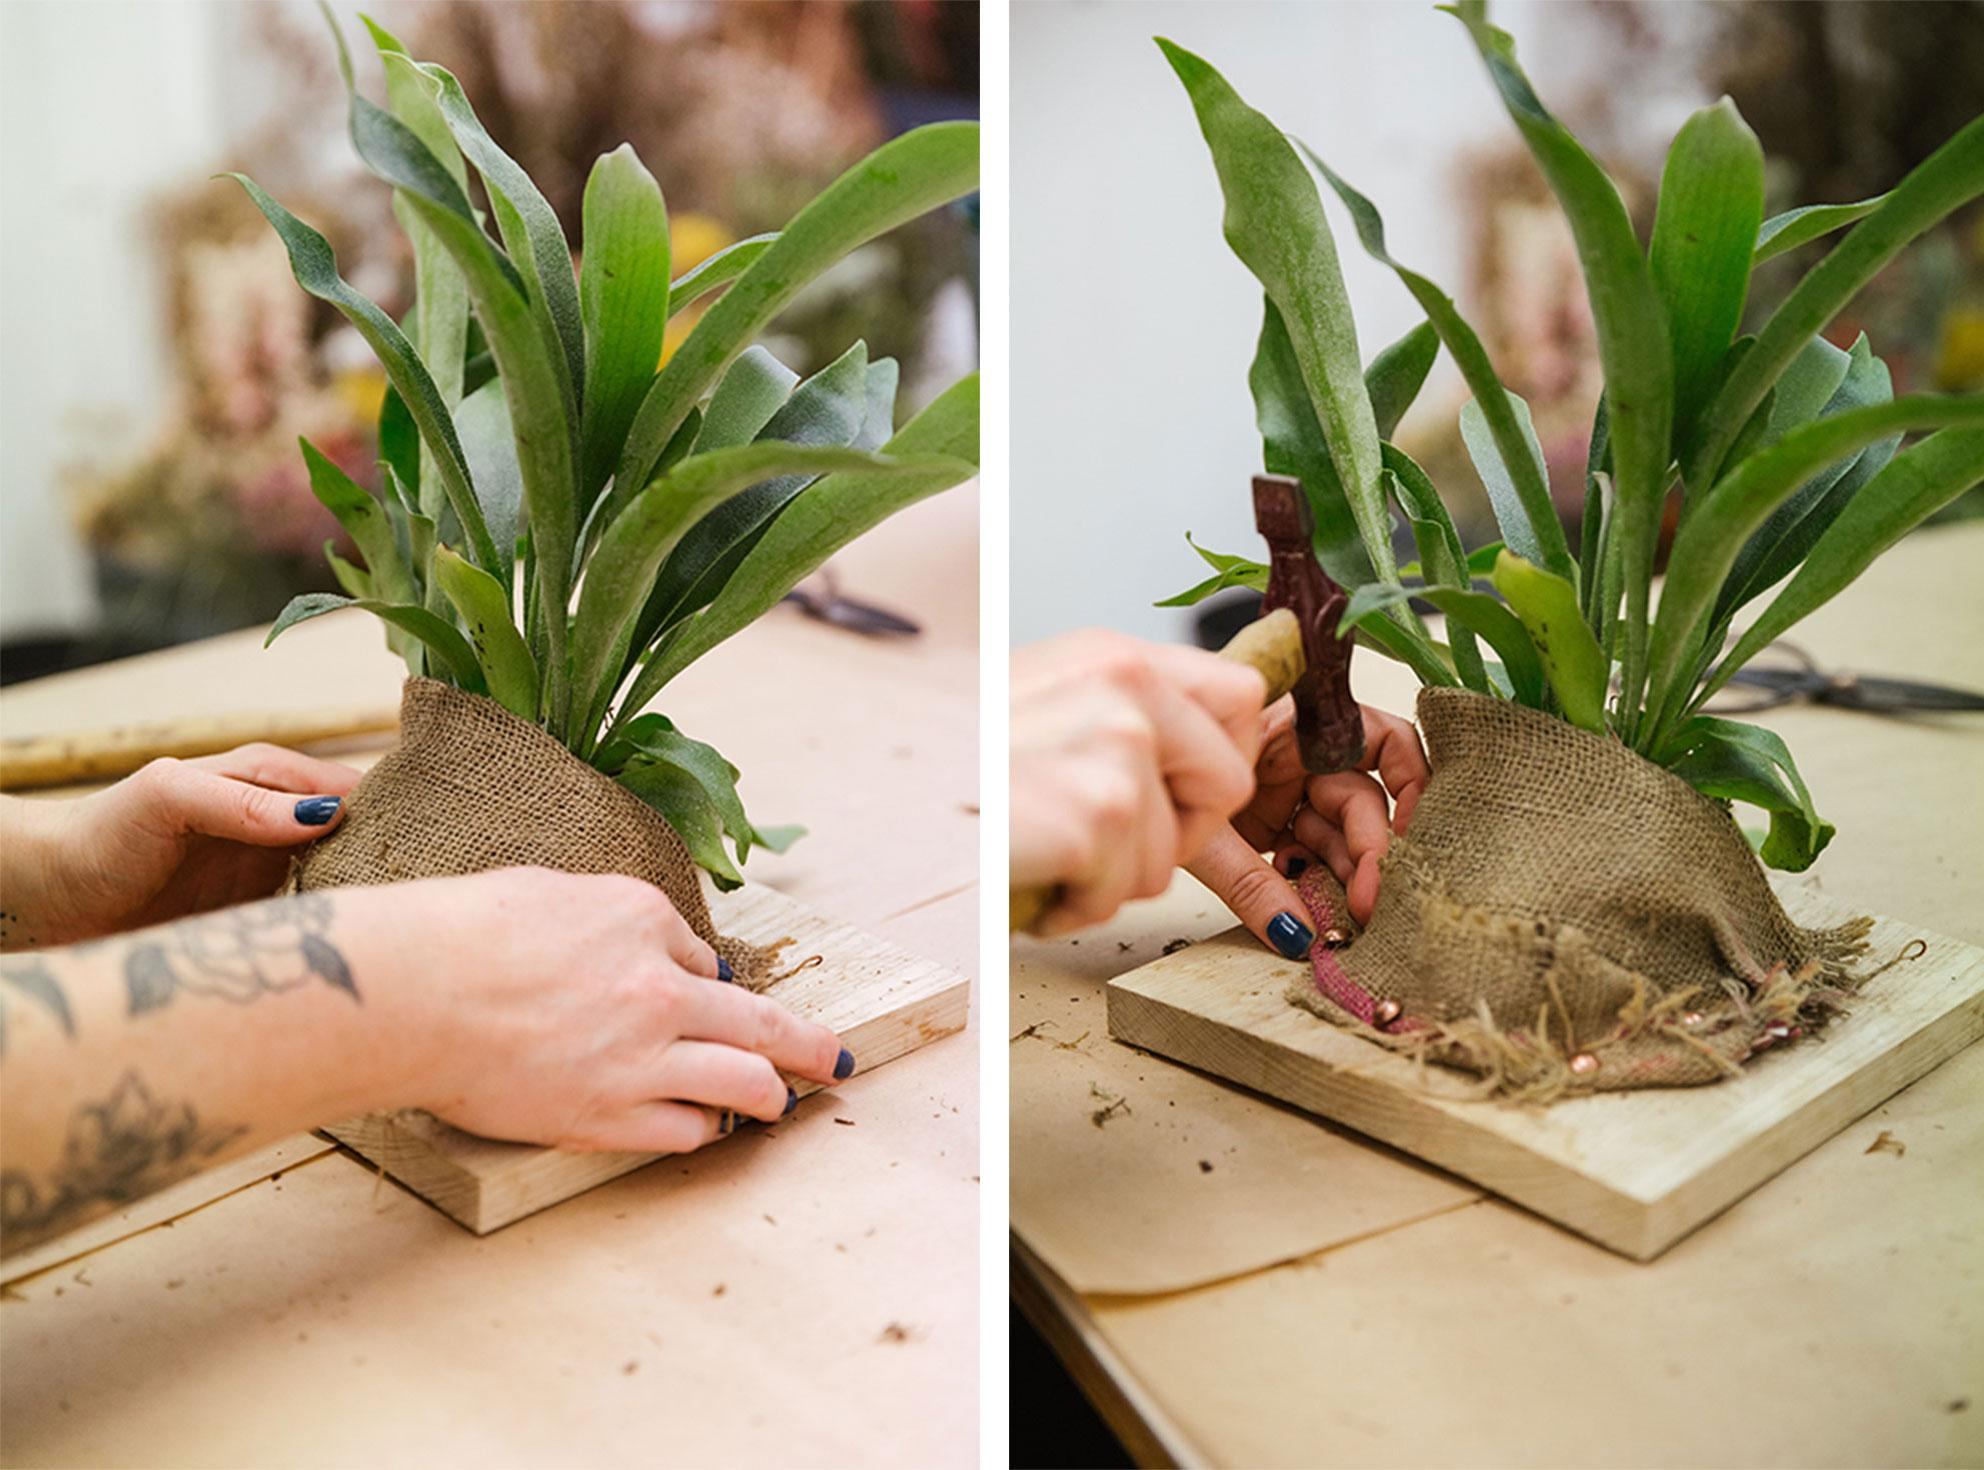 Wrap hessian fabric around the plant then use upholstery nails to fasten it